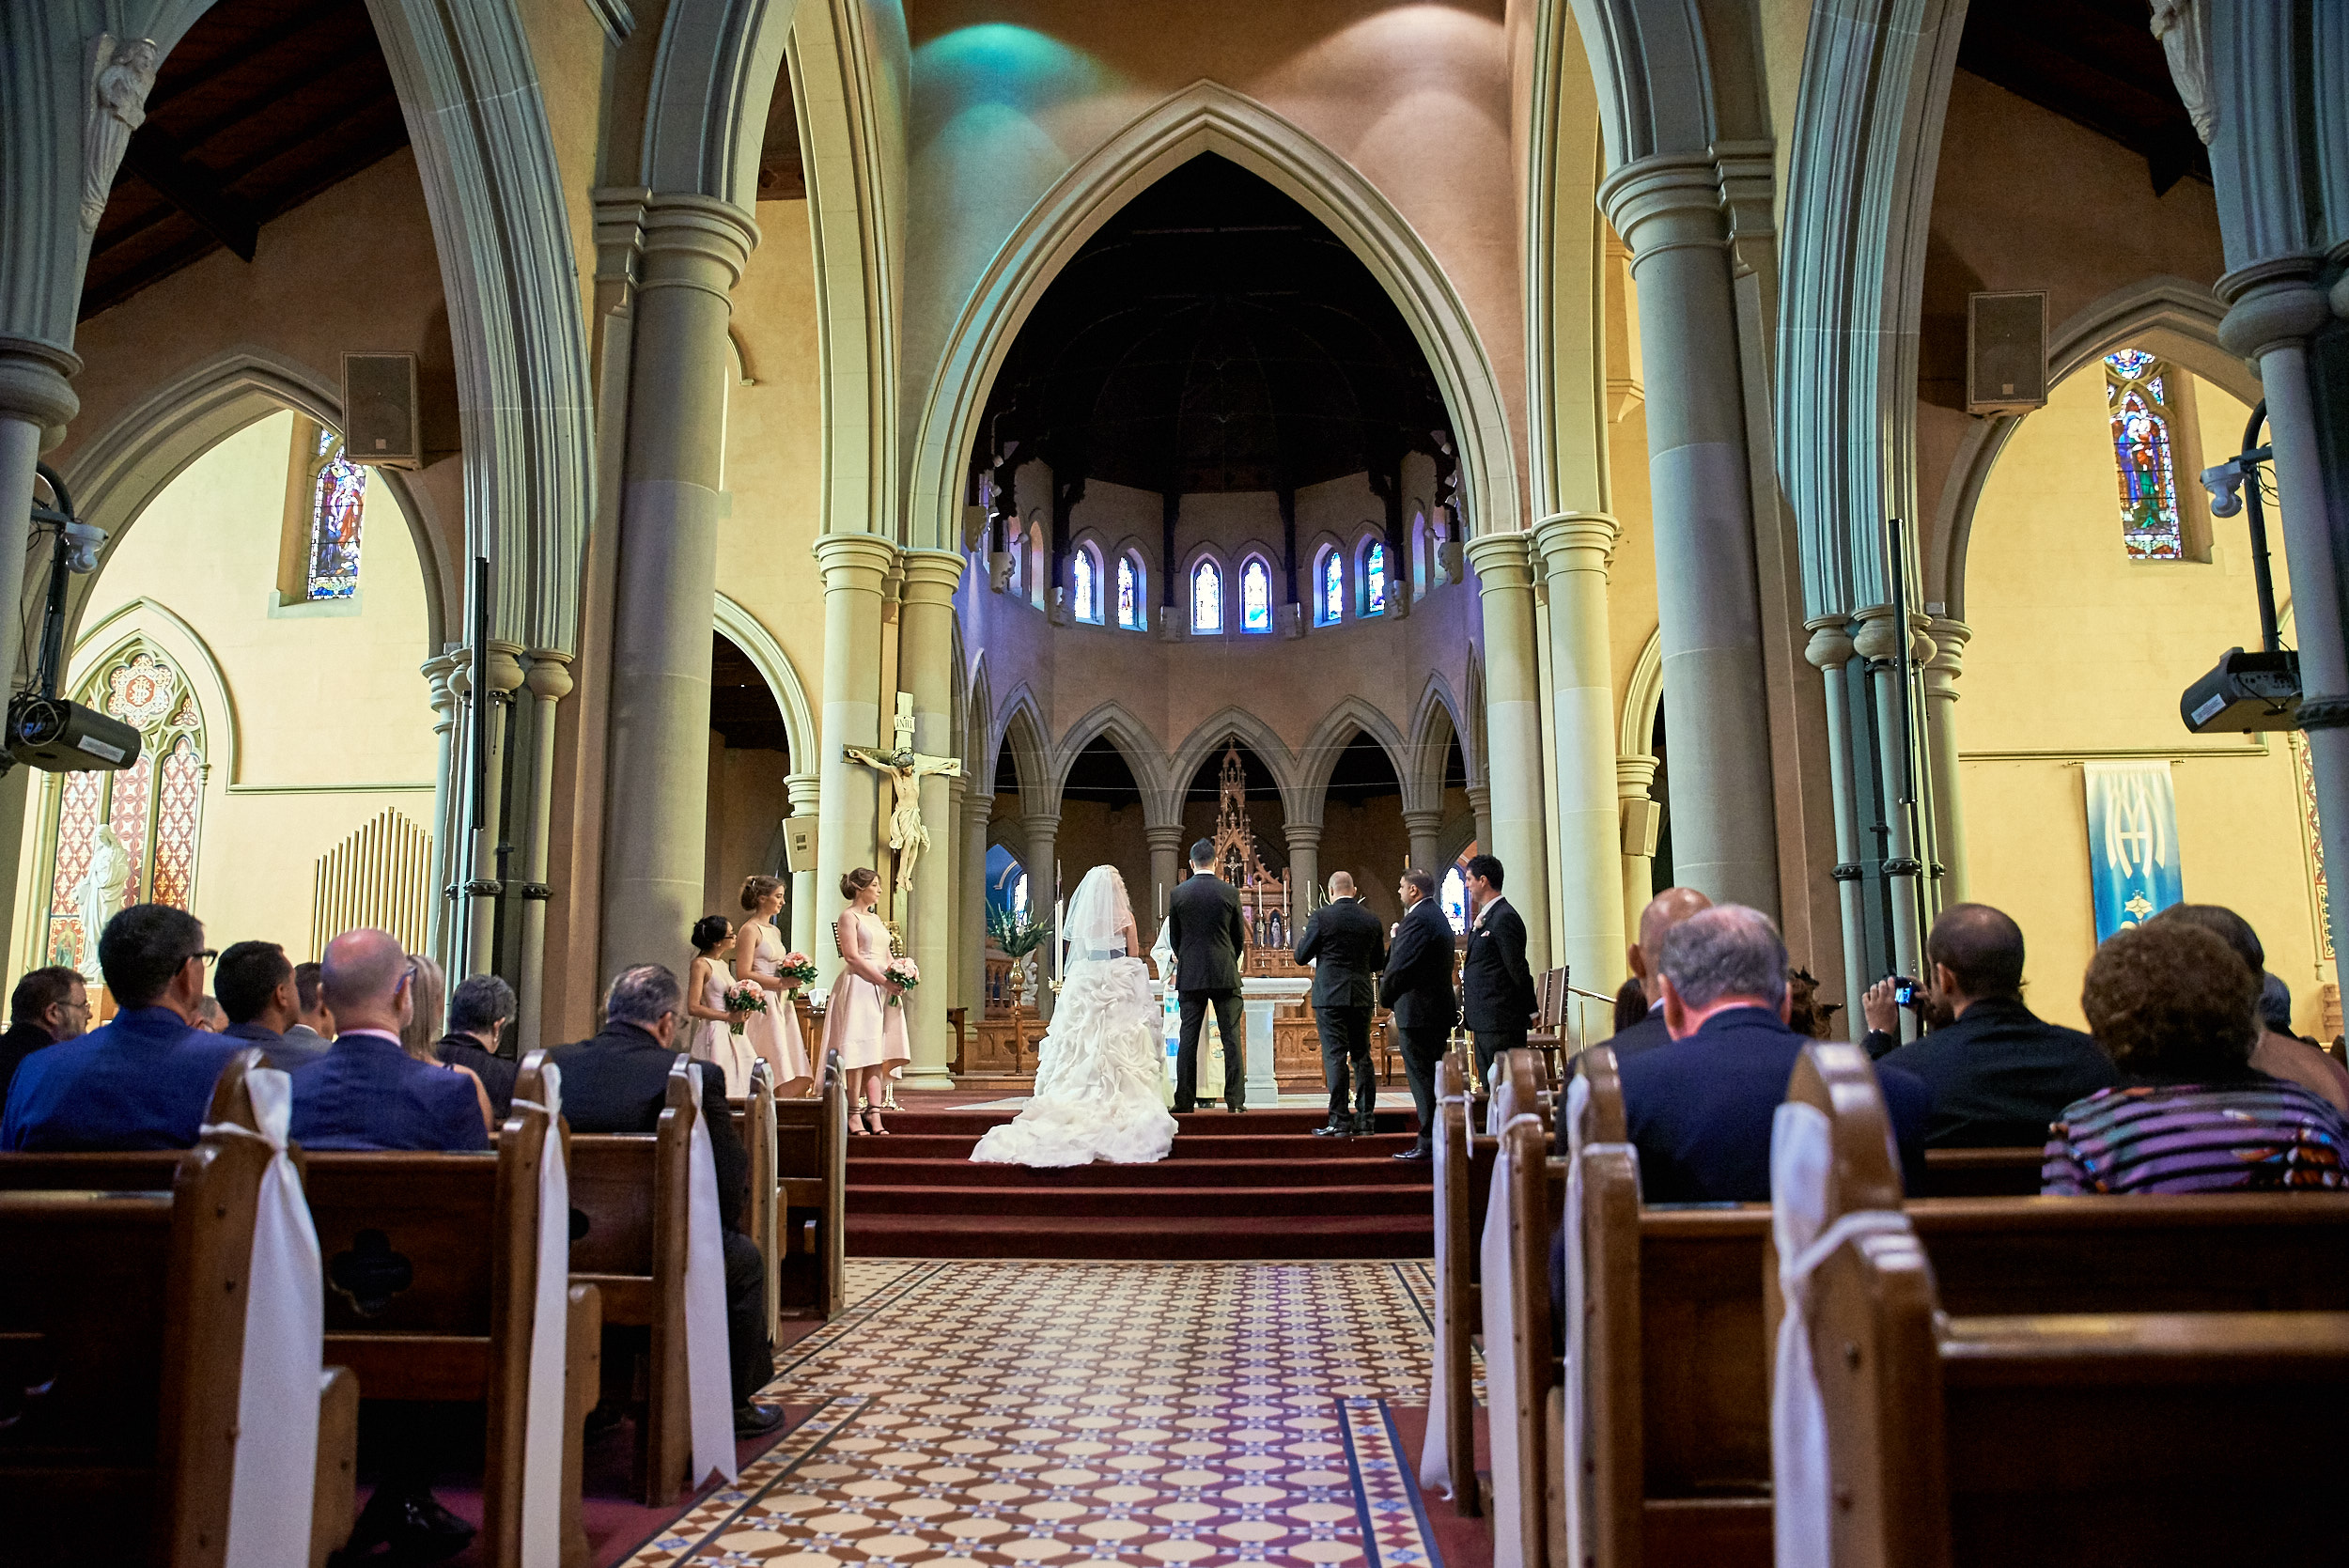 Wedding ceremony in St Mary of the Angels Basilica in Geelong